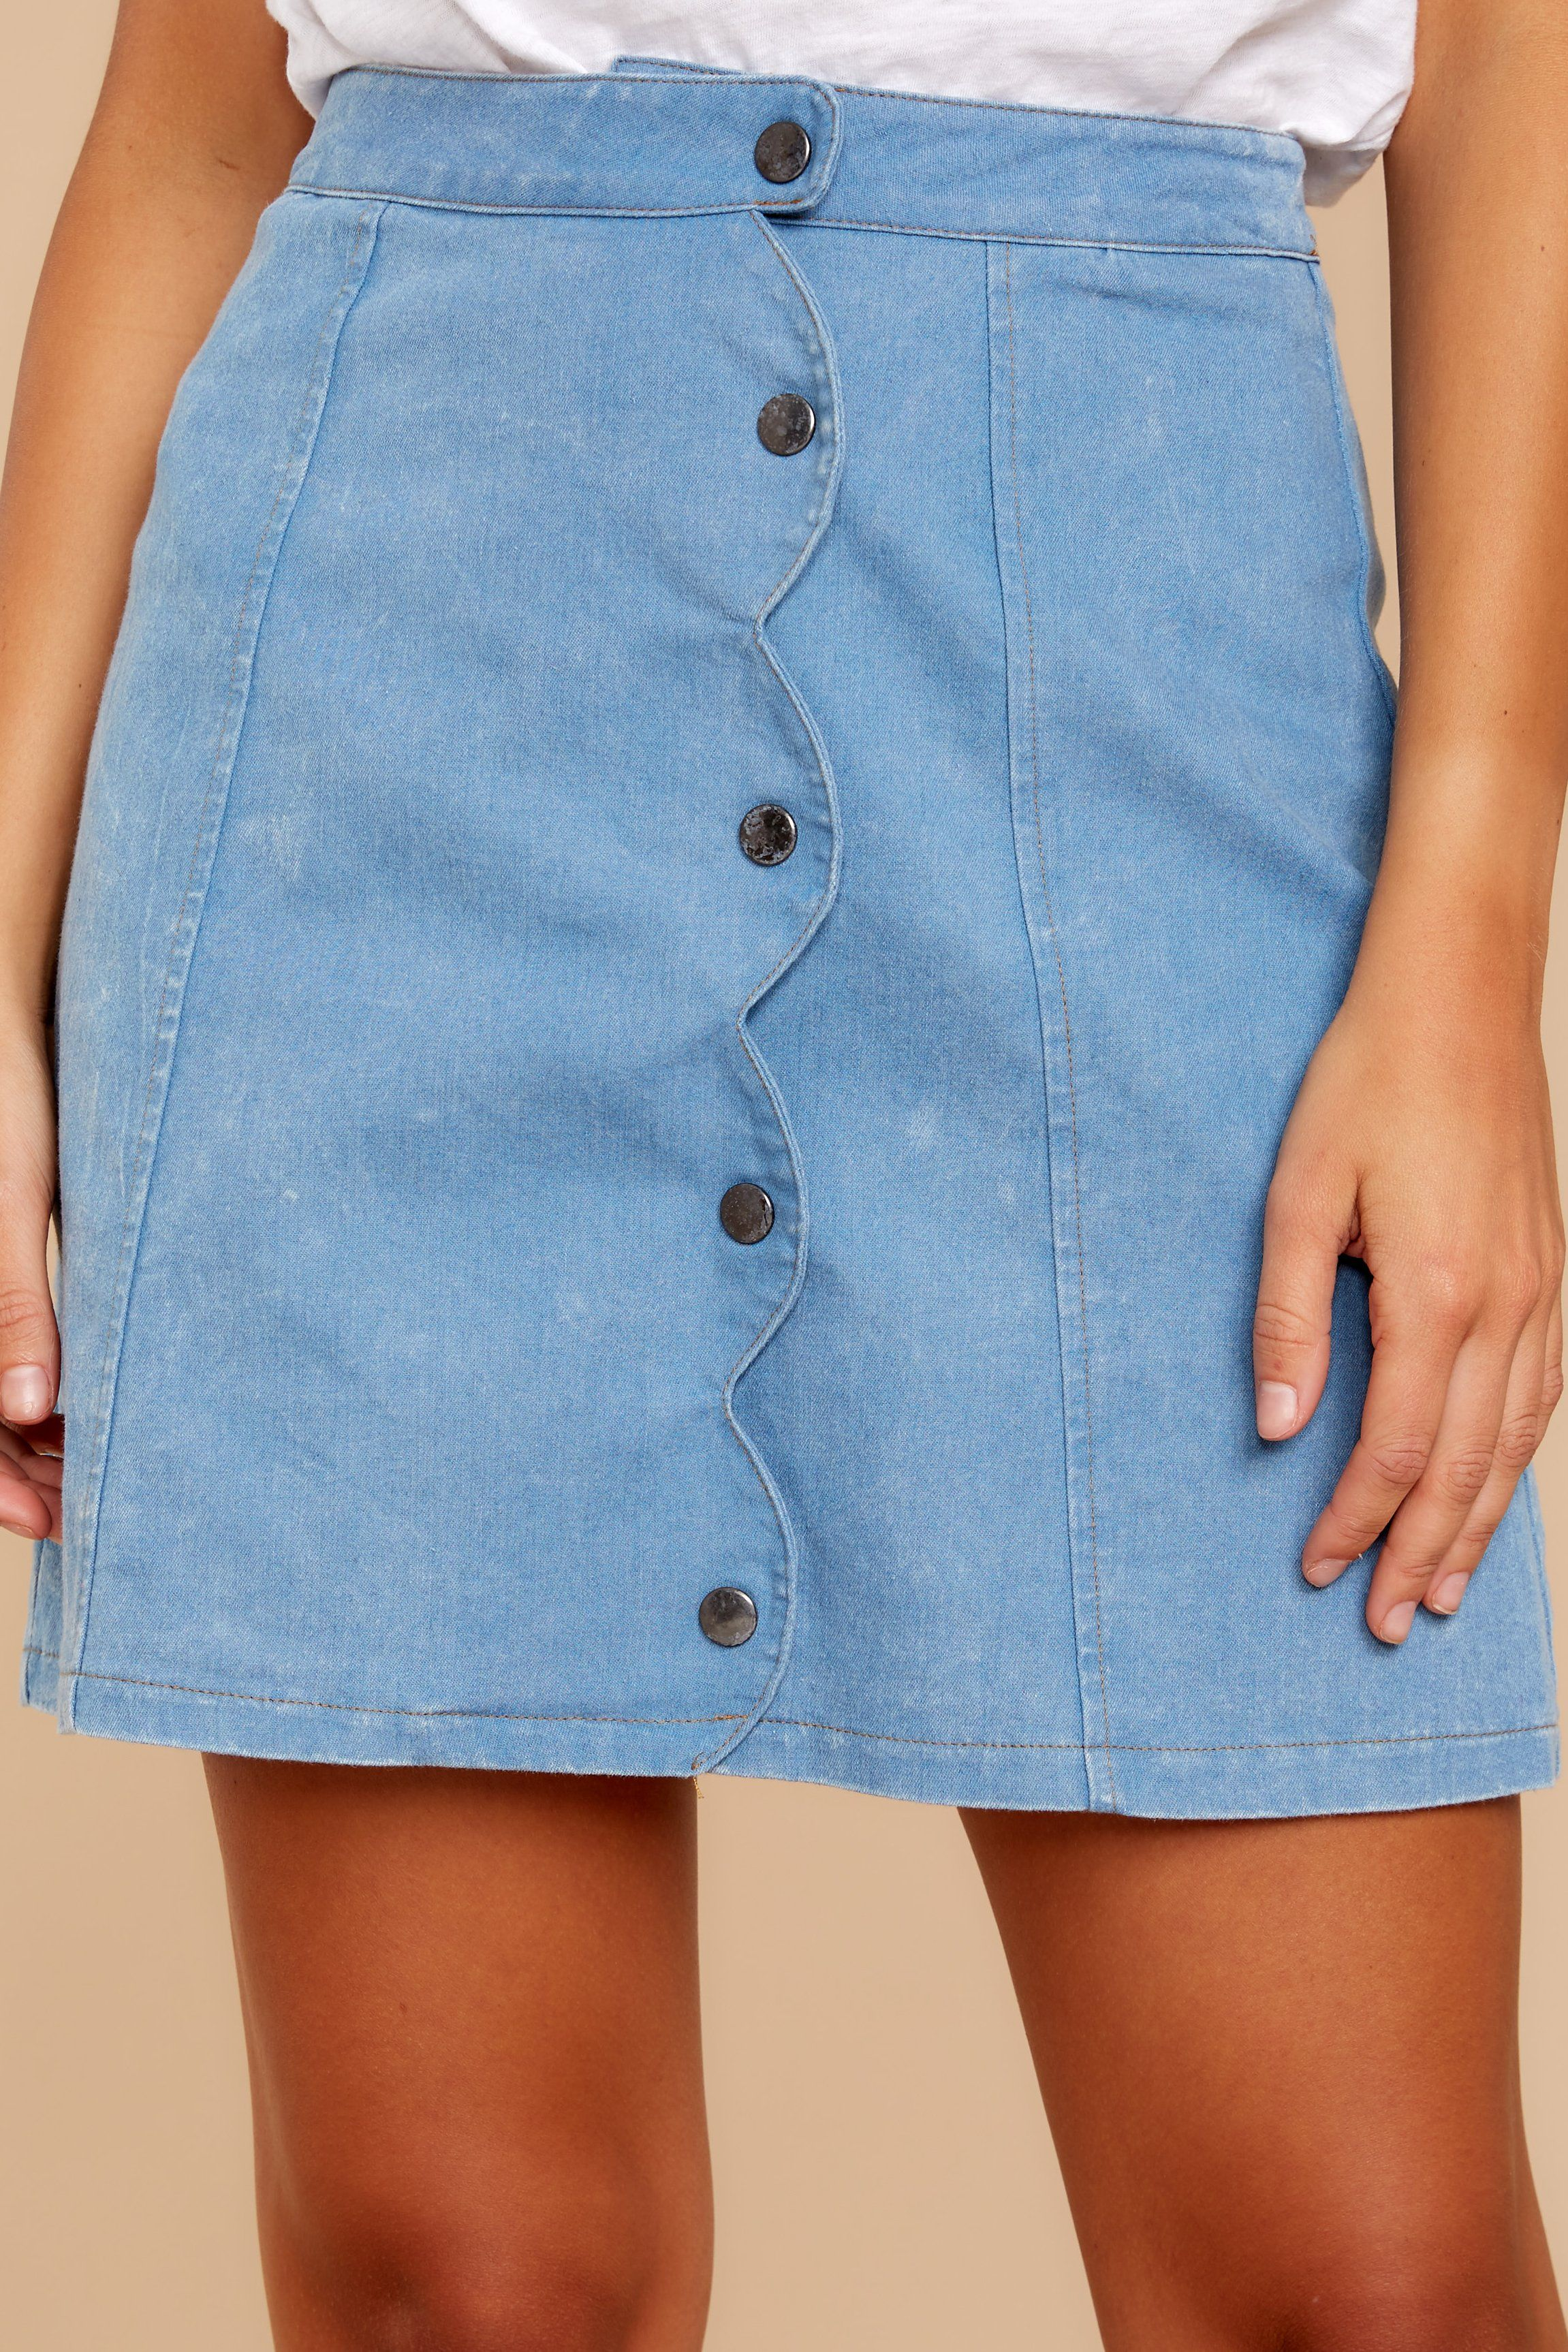 bb0ddda9694b Chic Medium Wash Denim Skirt - Trendy Skirt - Skirt - $42.00 – Red Dress  Boutique